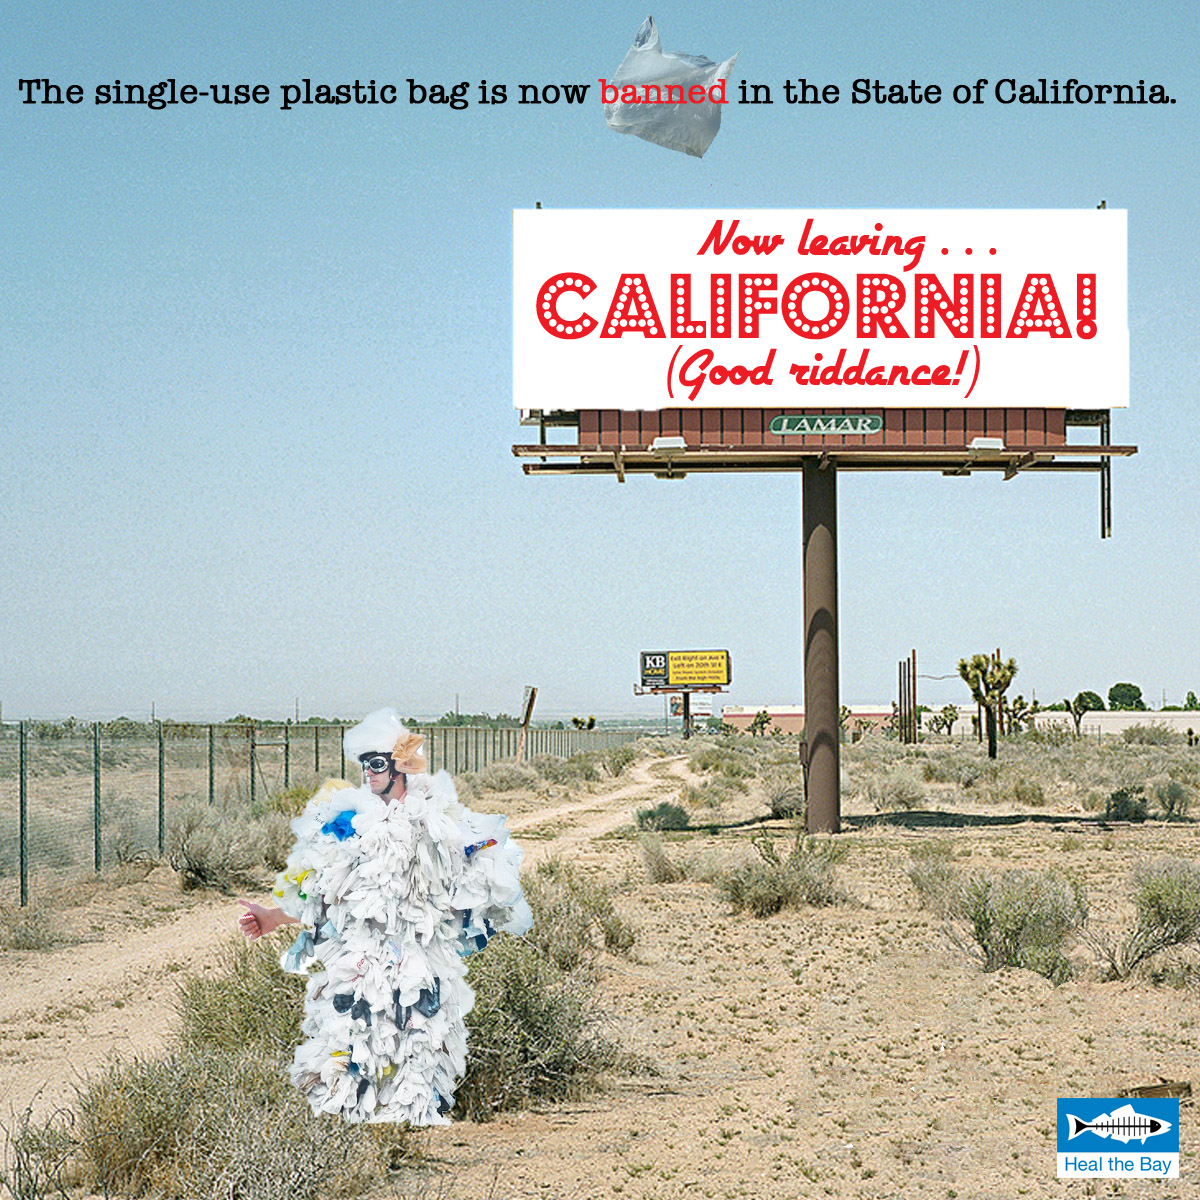 California bans the plastic bag